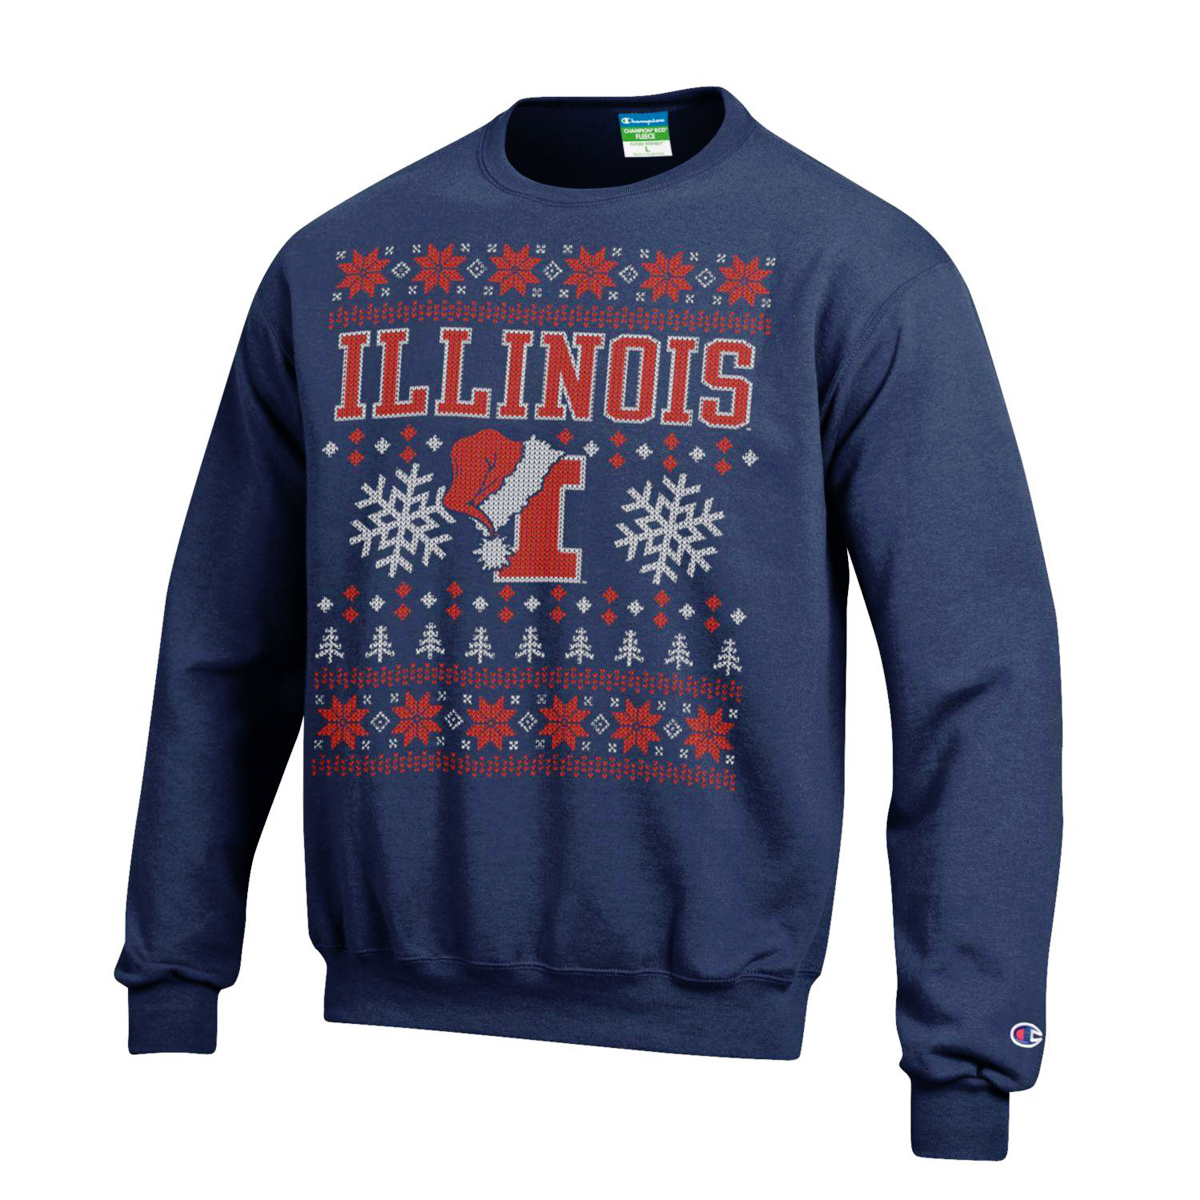 Campus holiday gift guide | Illinois